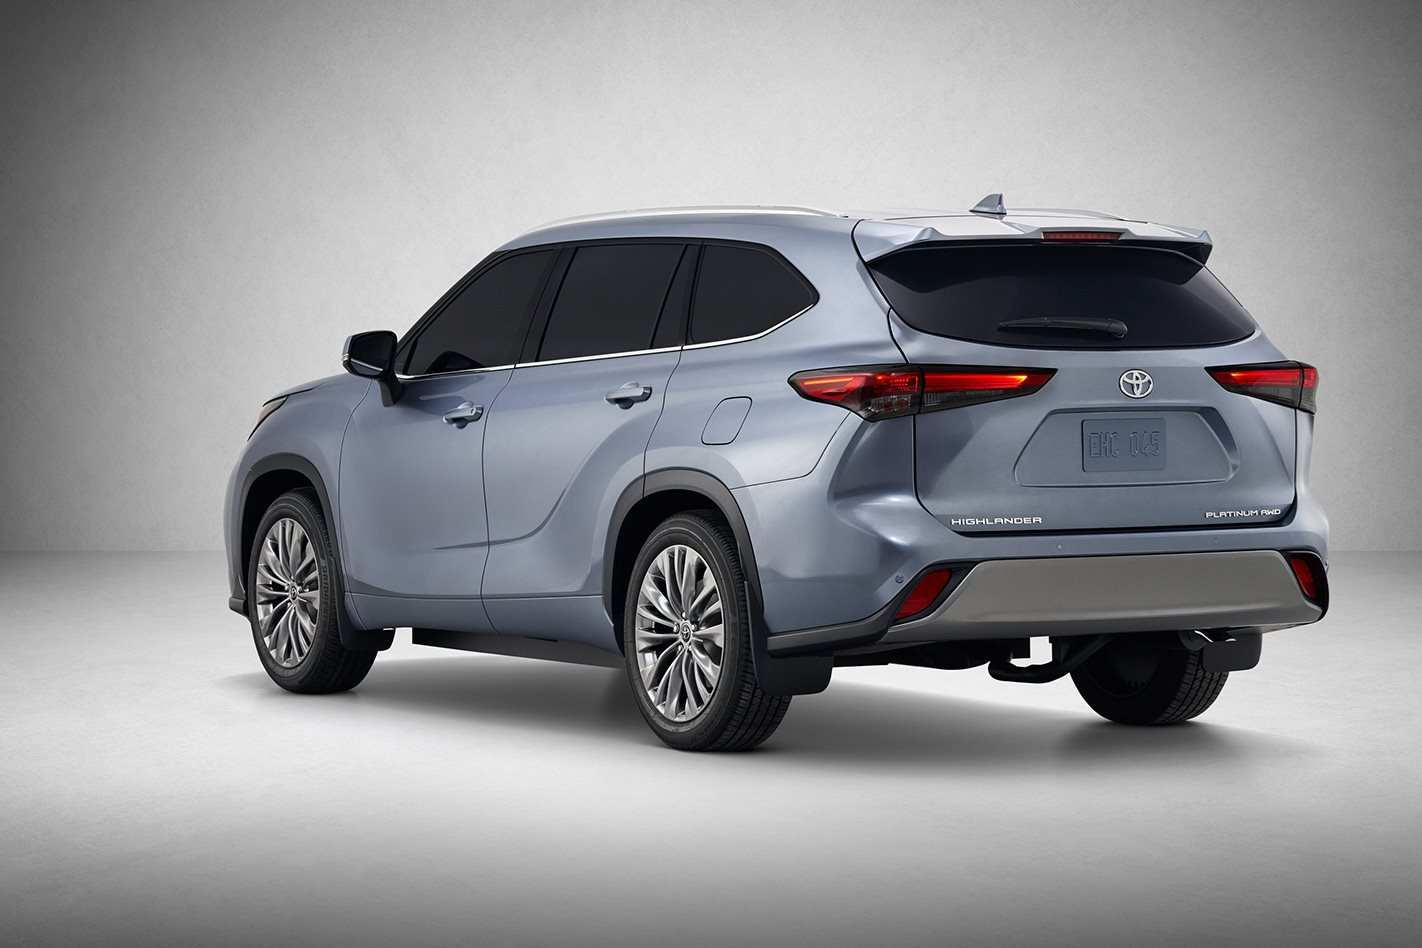 59 All New Toyota Kluger New Model 2020 Configurations for Toyota Kluger New Model 2020